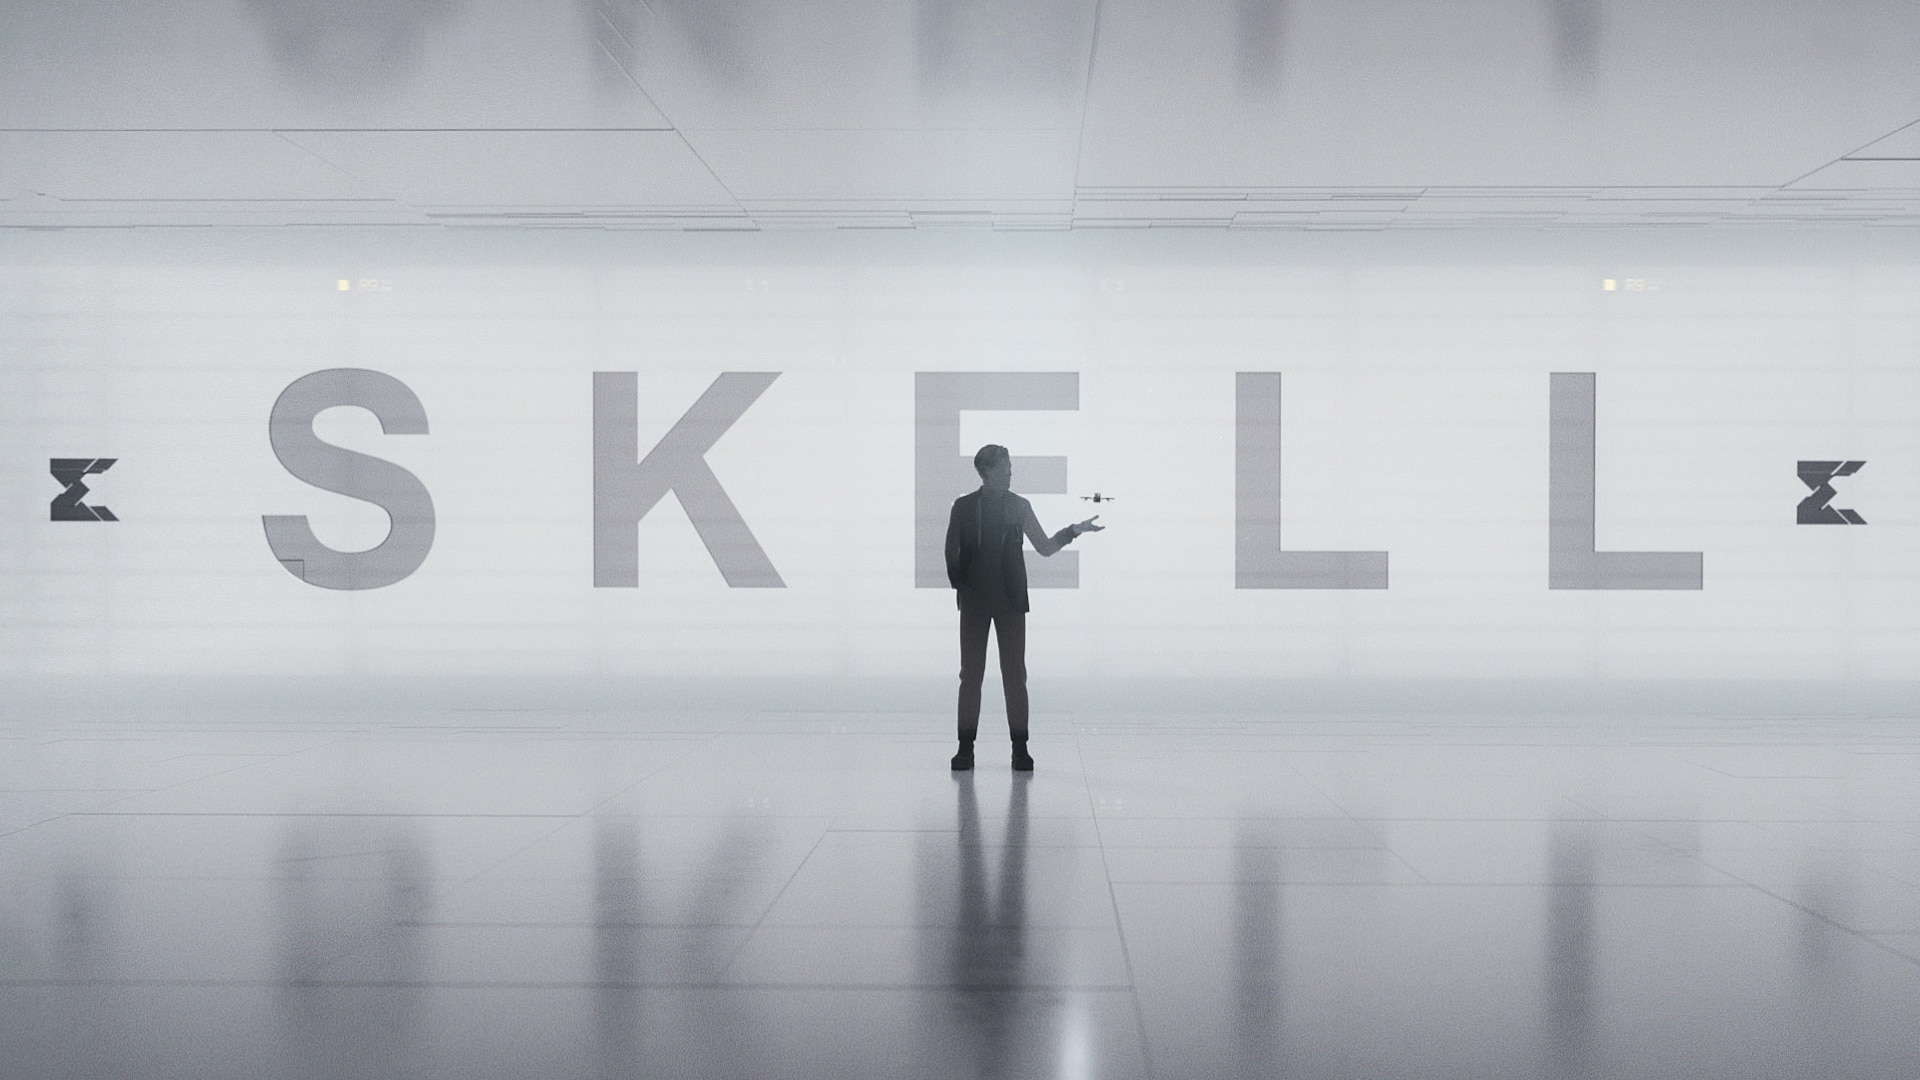 SKELL01